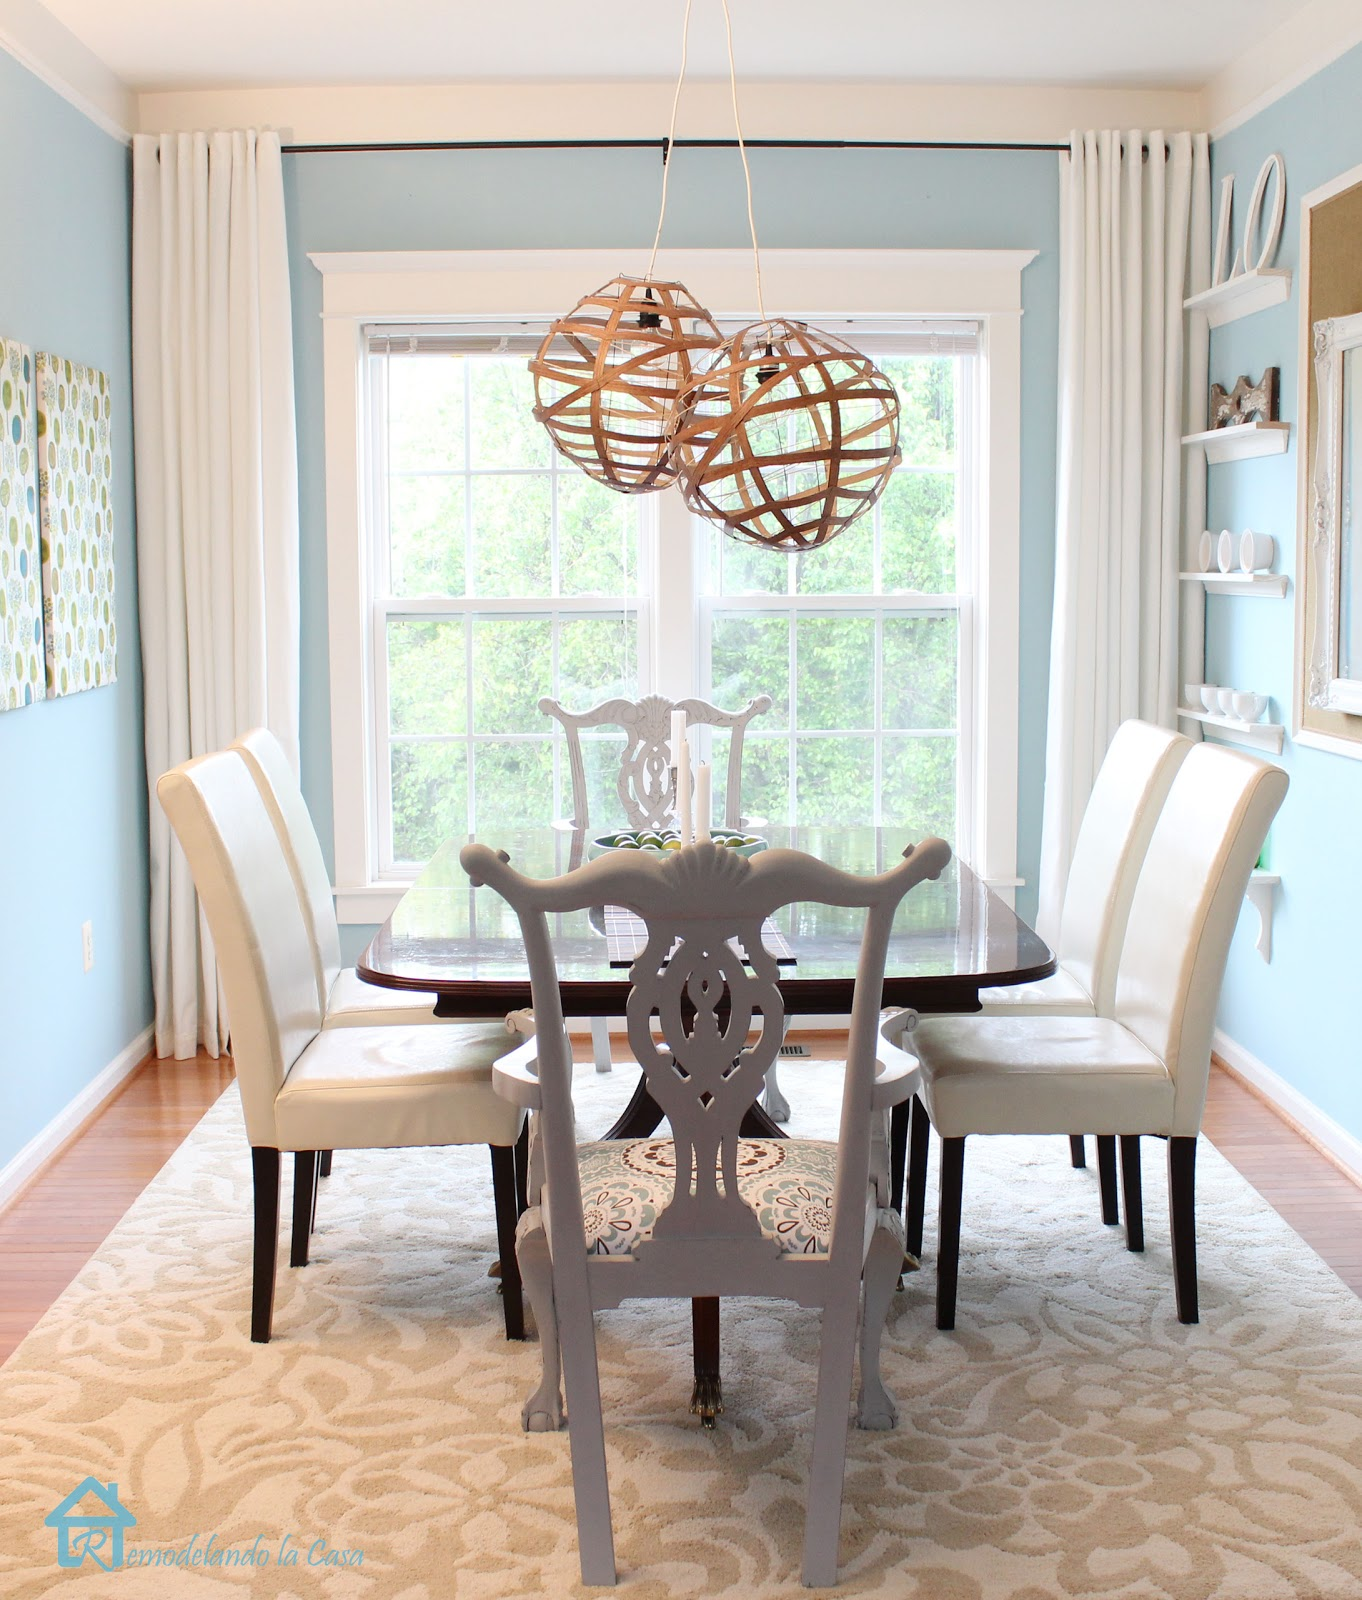 Dining Room Window: How To Install Trim On A Double Window